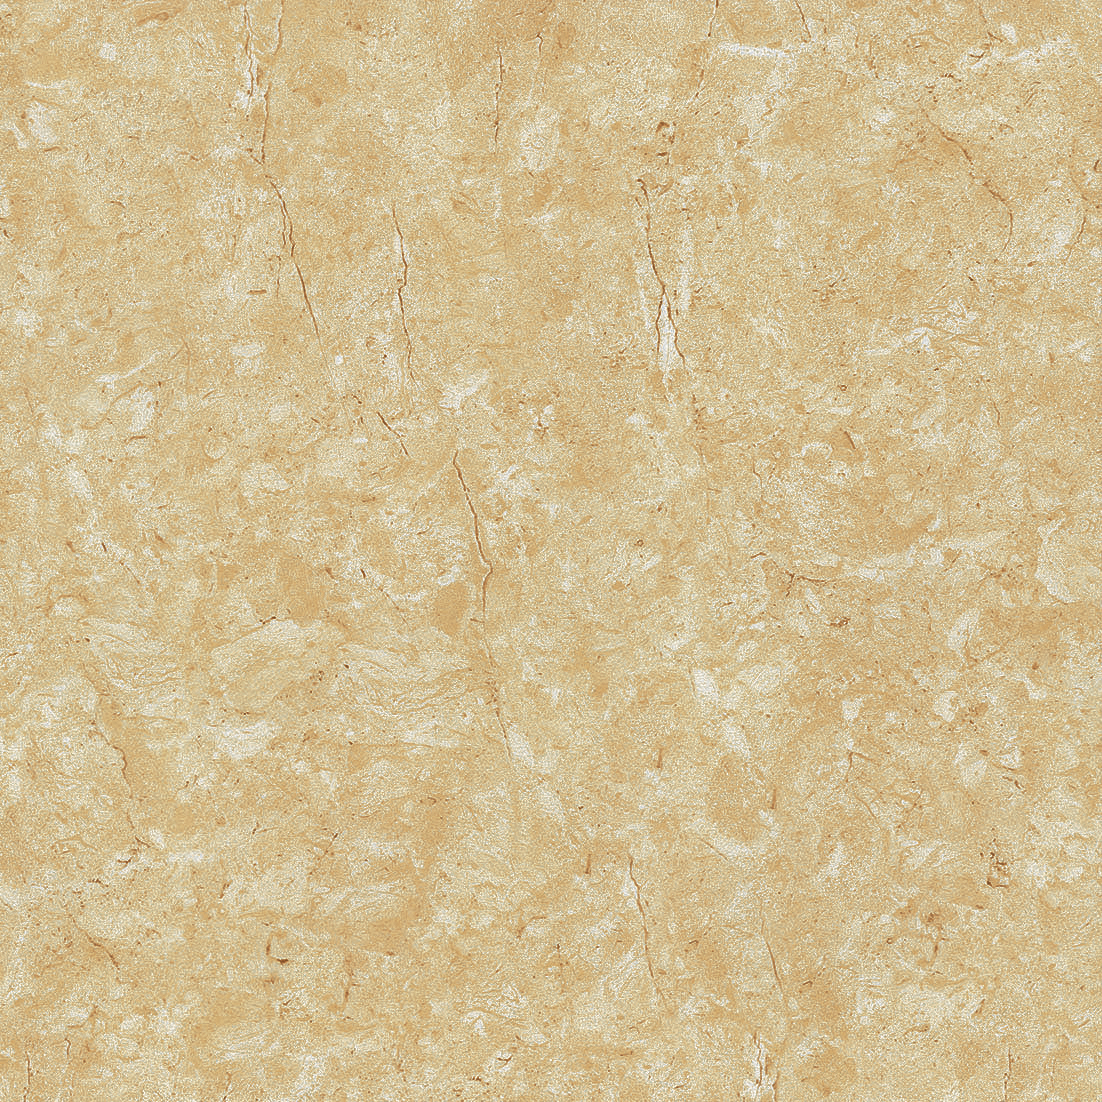 Ceramic Floor Tile 60x60 Cream Beige Marble Color Granite Tiles